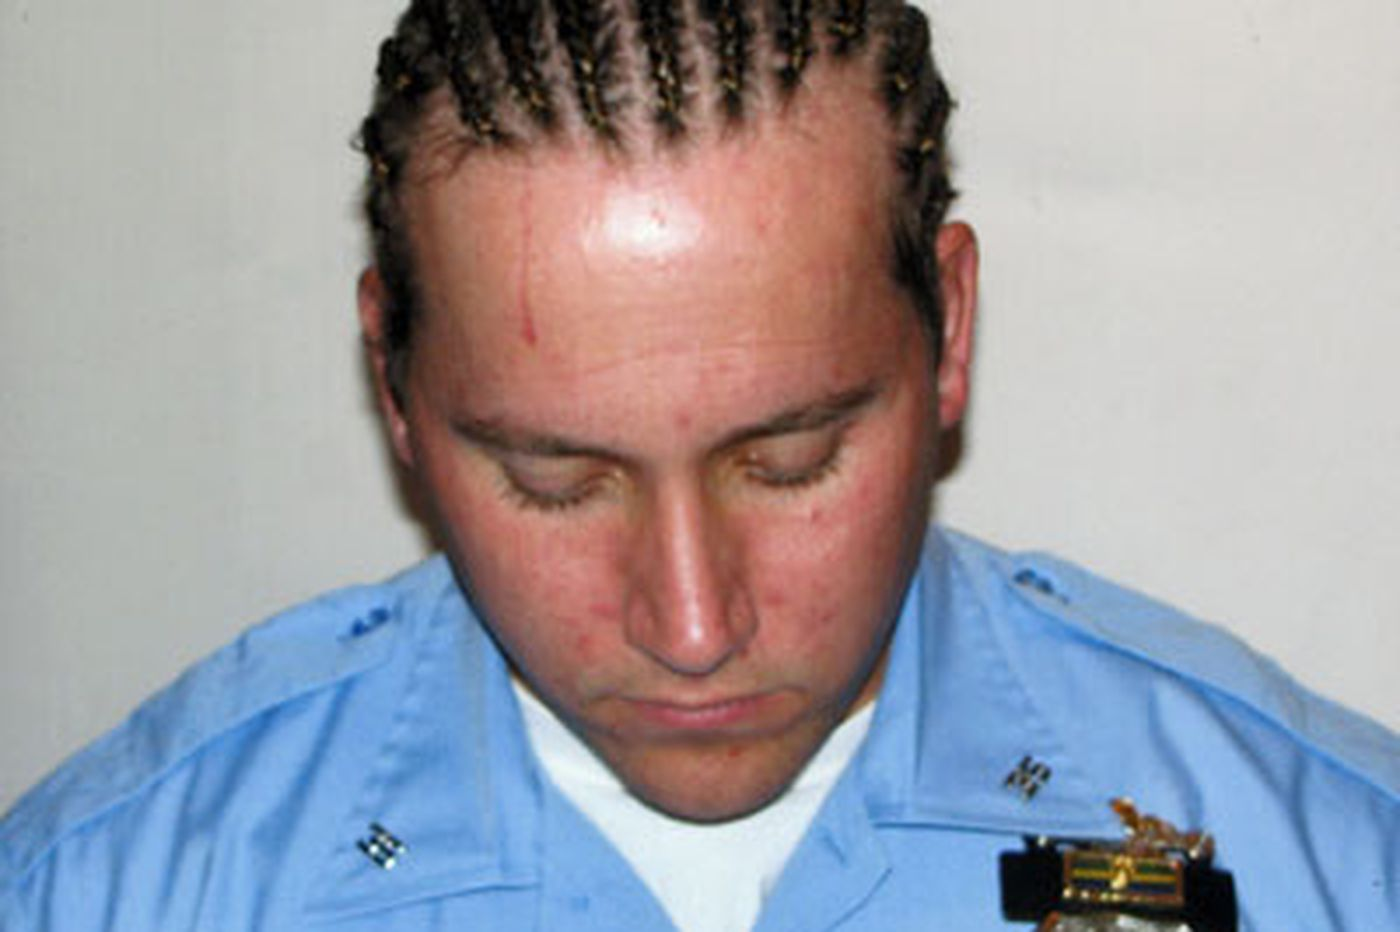 Cop with cornrows pulled from street duty